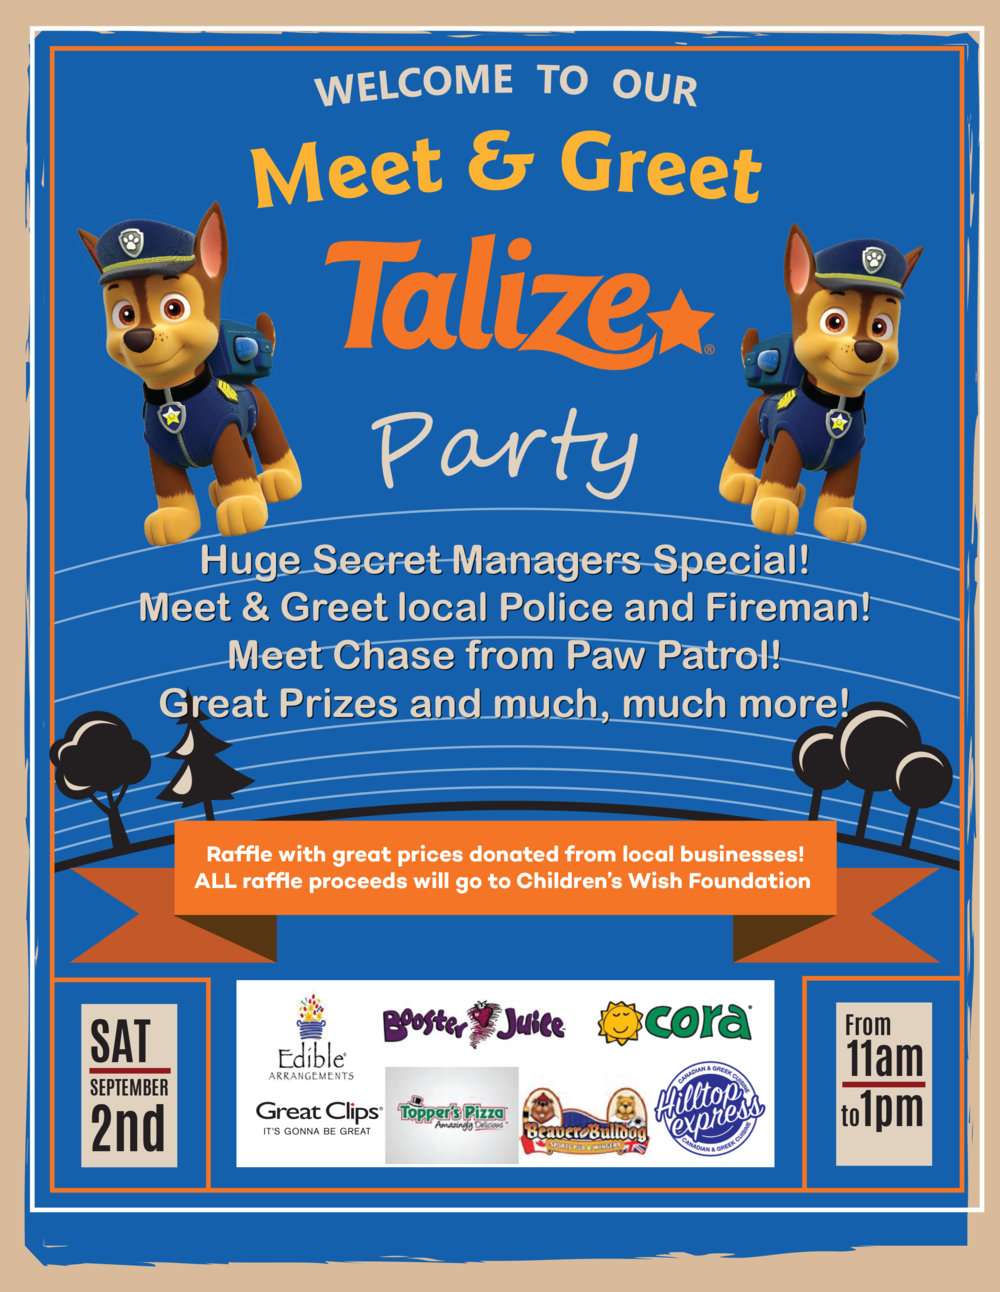 Don't miss our party! Huge Secret Managers Specials! Meet and Greet Local Police and Fireman! Meet Chase from Paw Patrol! Great Prizes and much, much more!